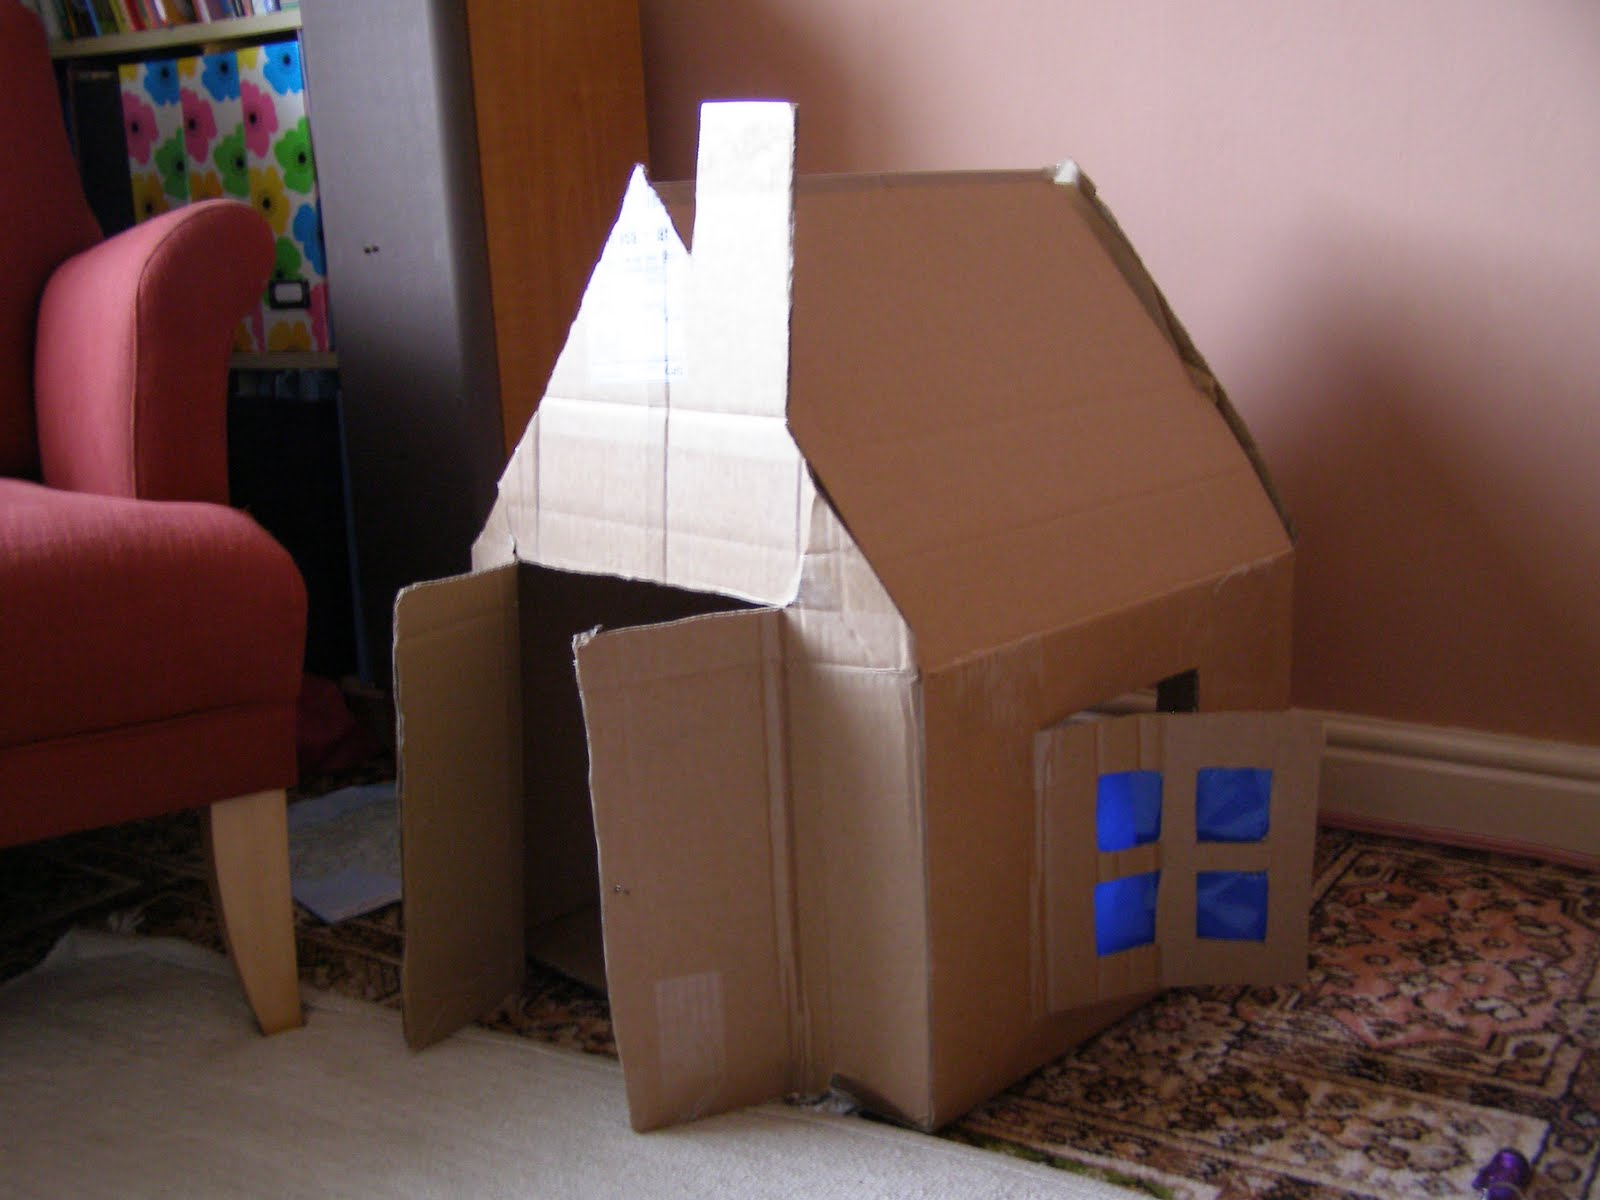 create with your hands creativity with cardboard boxes